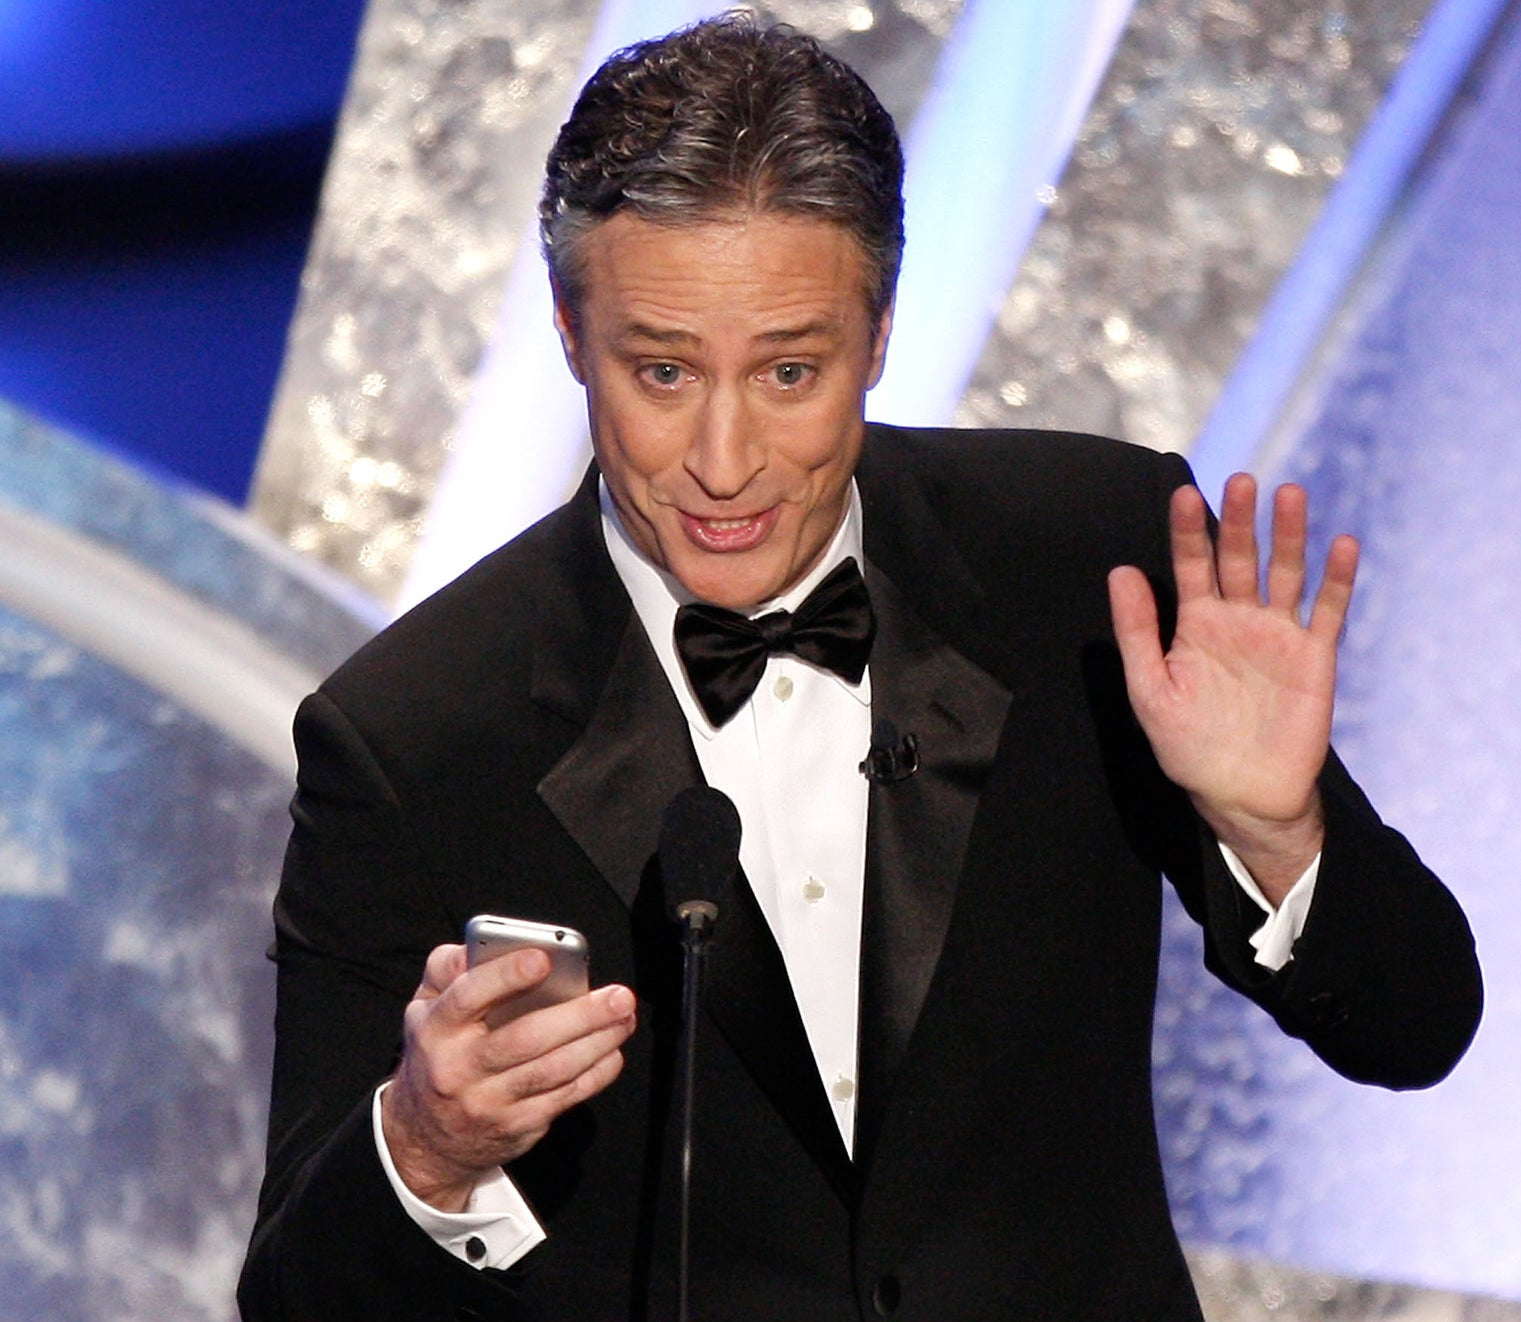 Jon Stewart hosted the 80th Annual Academy Awards.